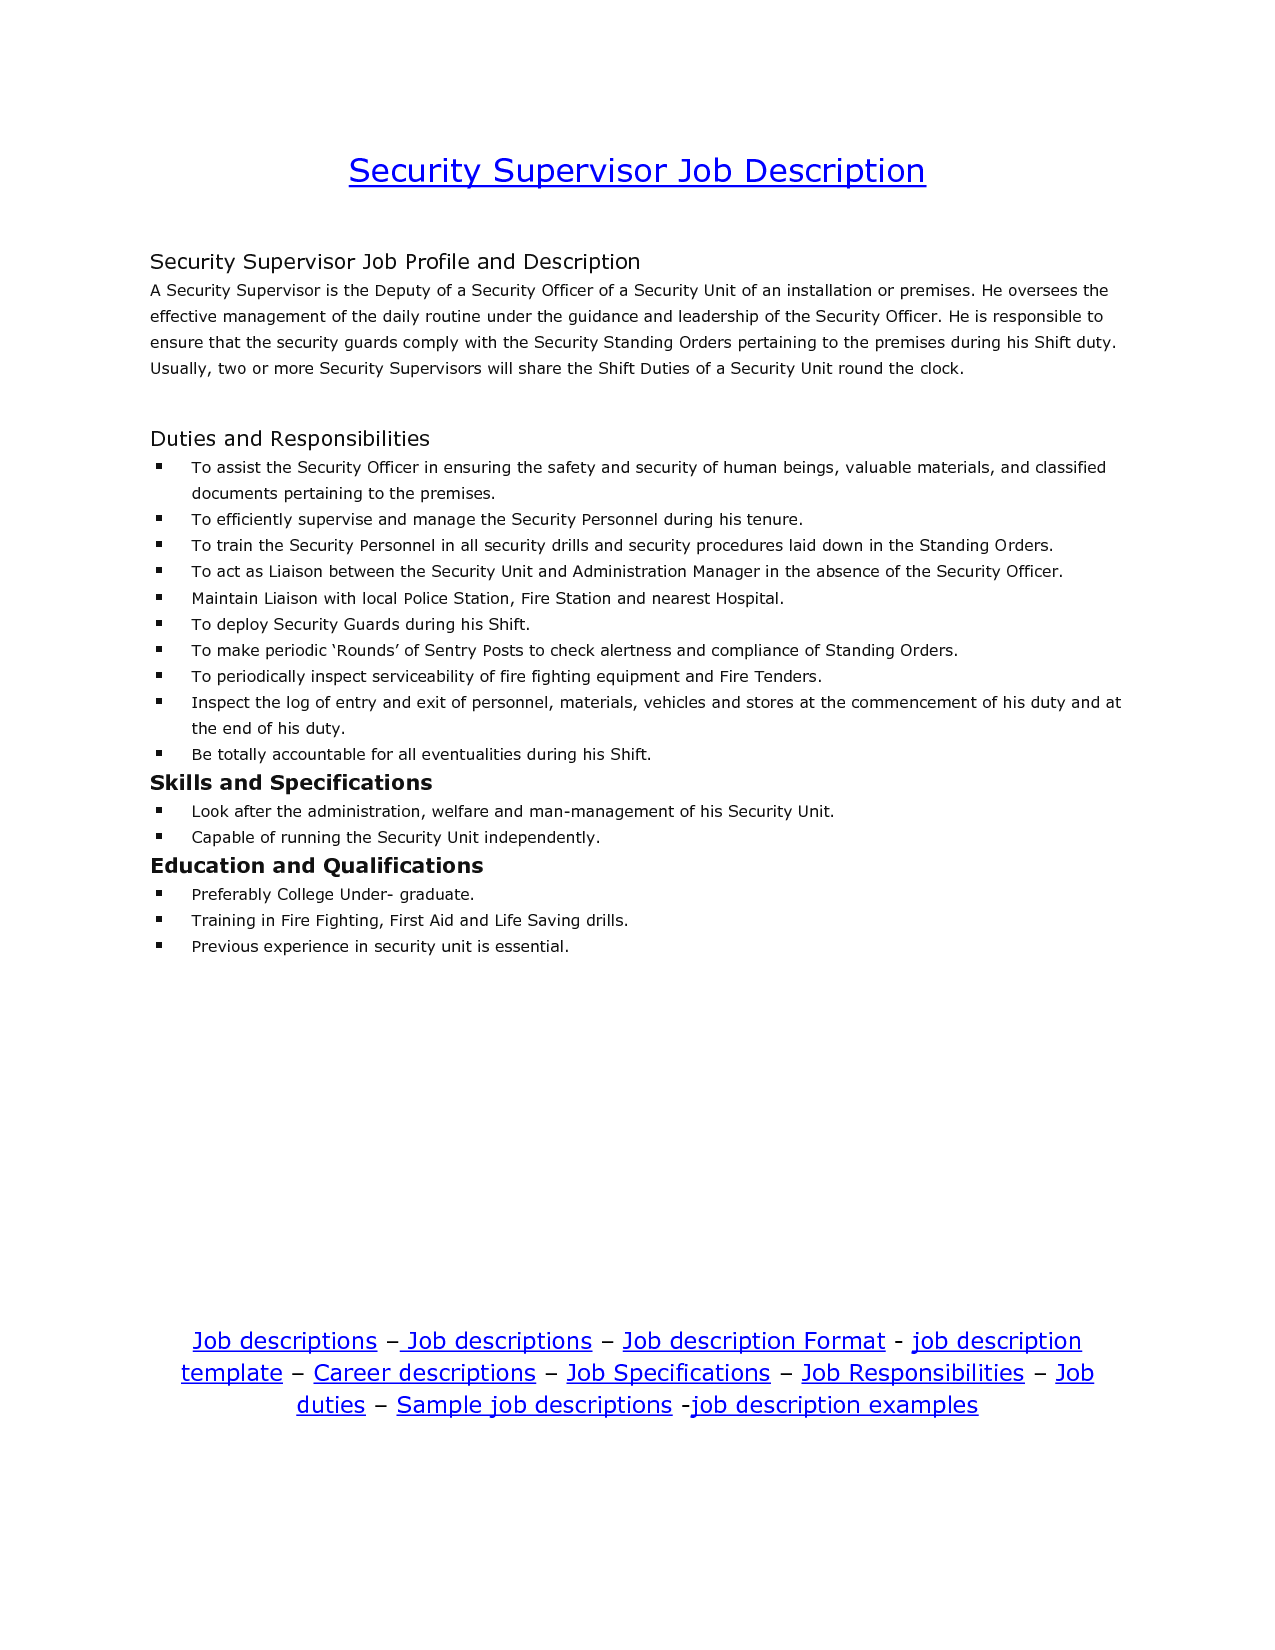 job description for security supervisor tk job description for security supervisor